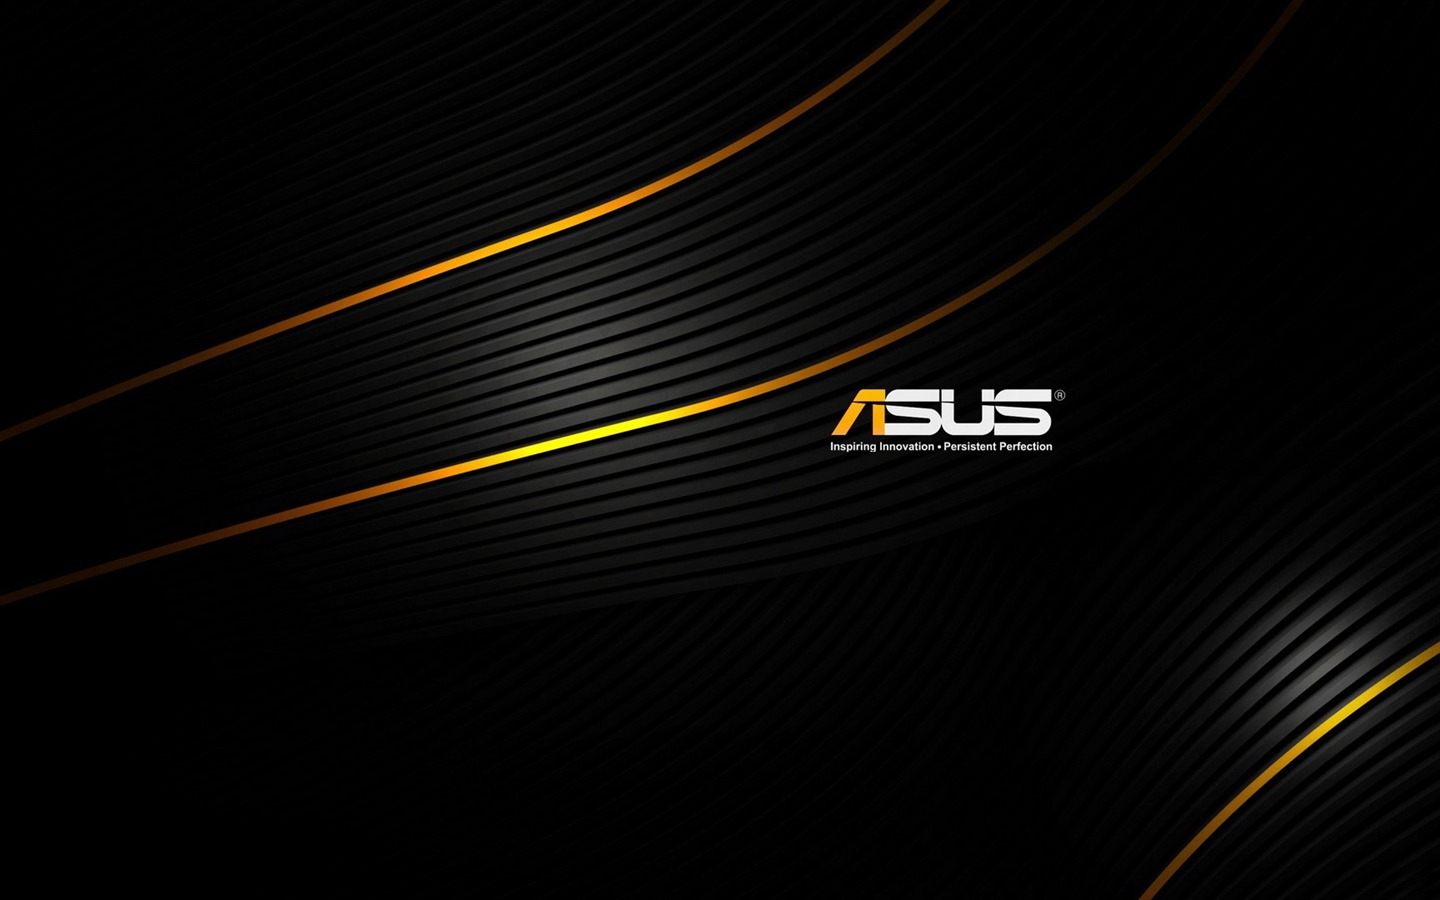 Asus_logo_background-Digital_HD_Wallpaper_1440x900 Asus